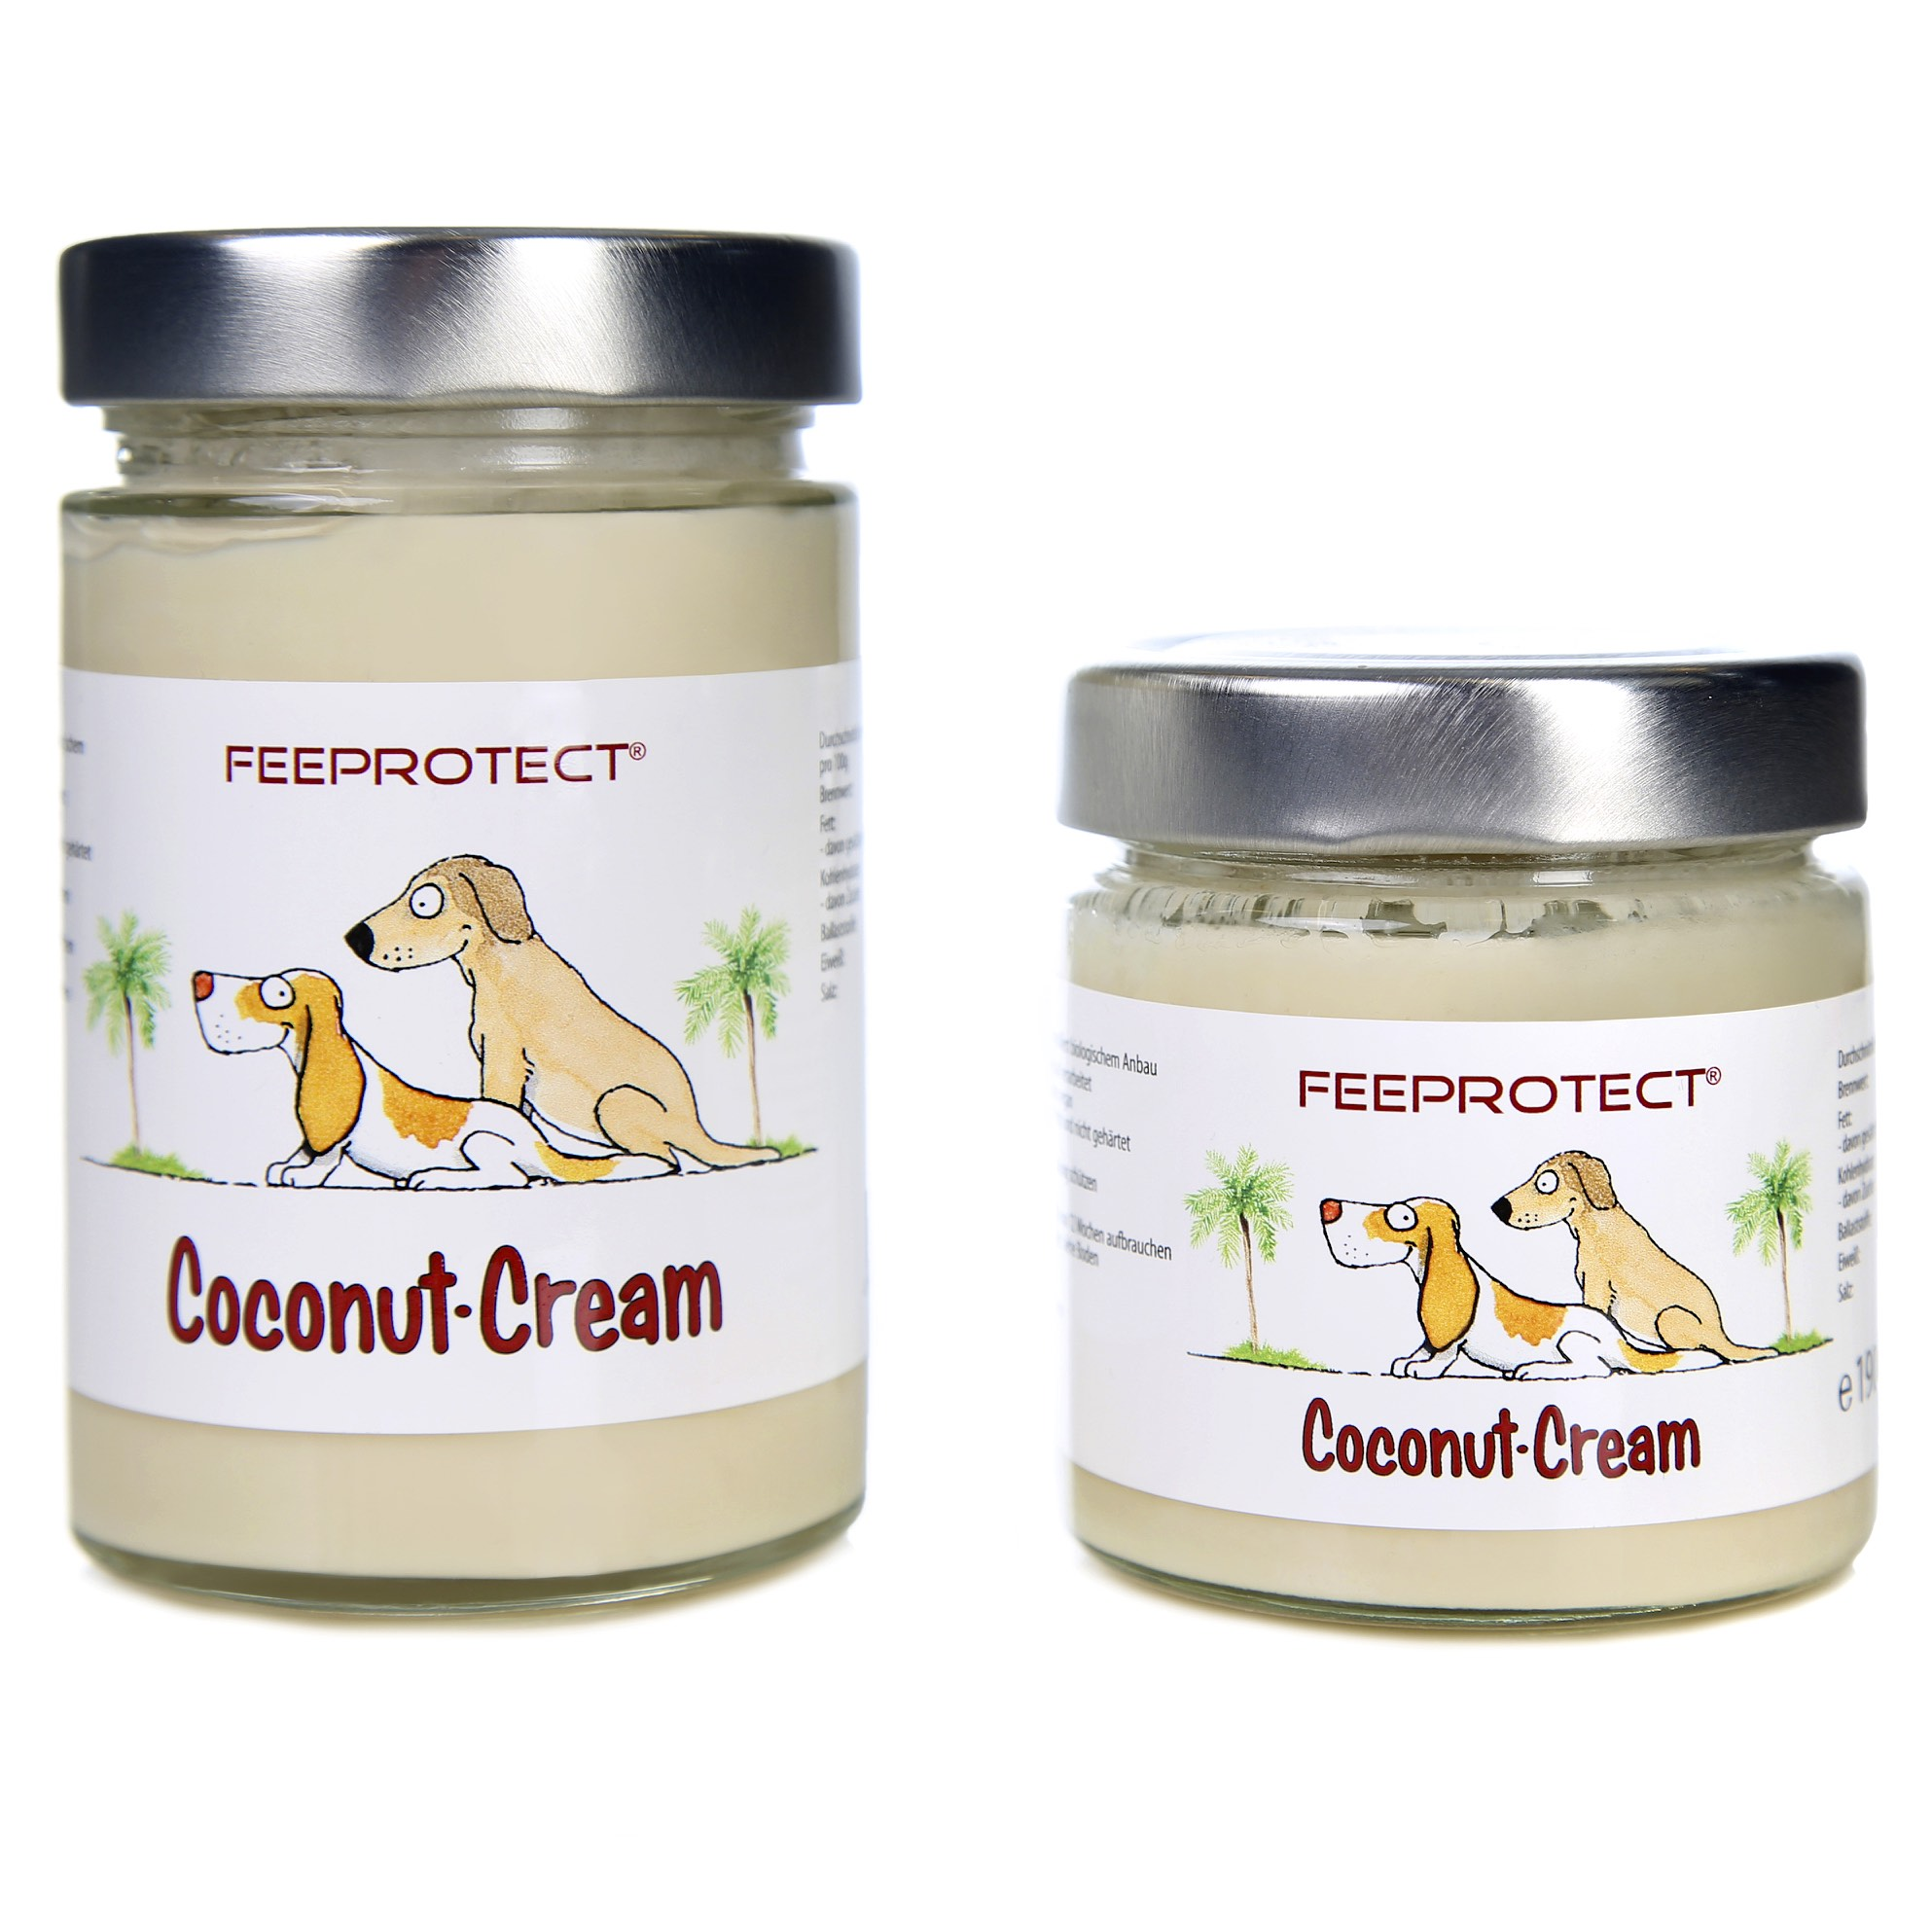 Feeprotect ® Coconut-Cream 190g